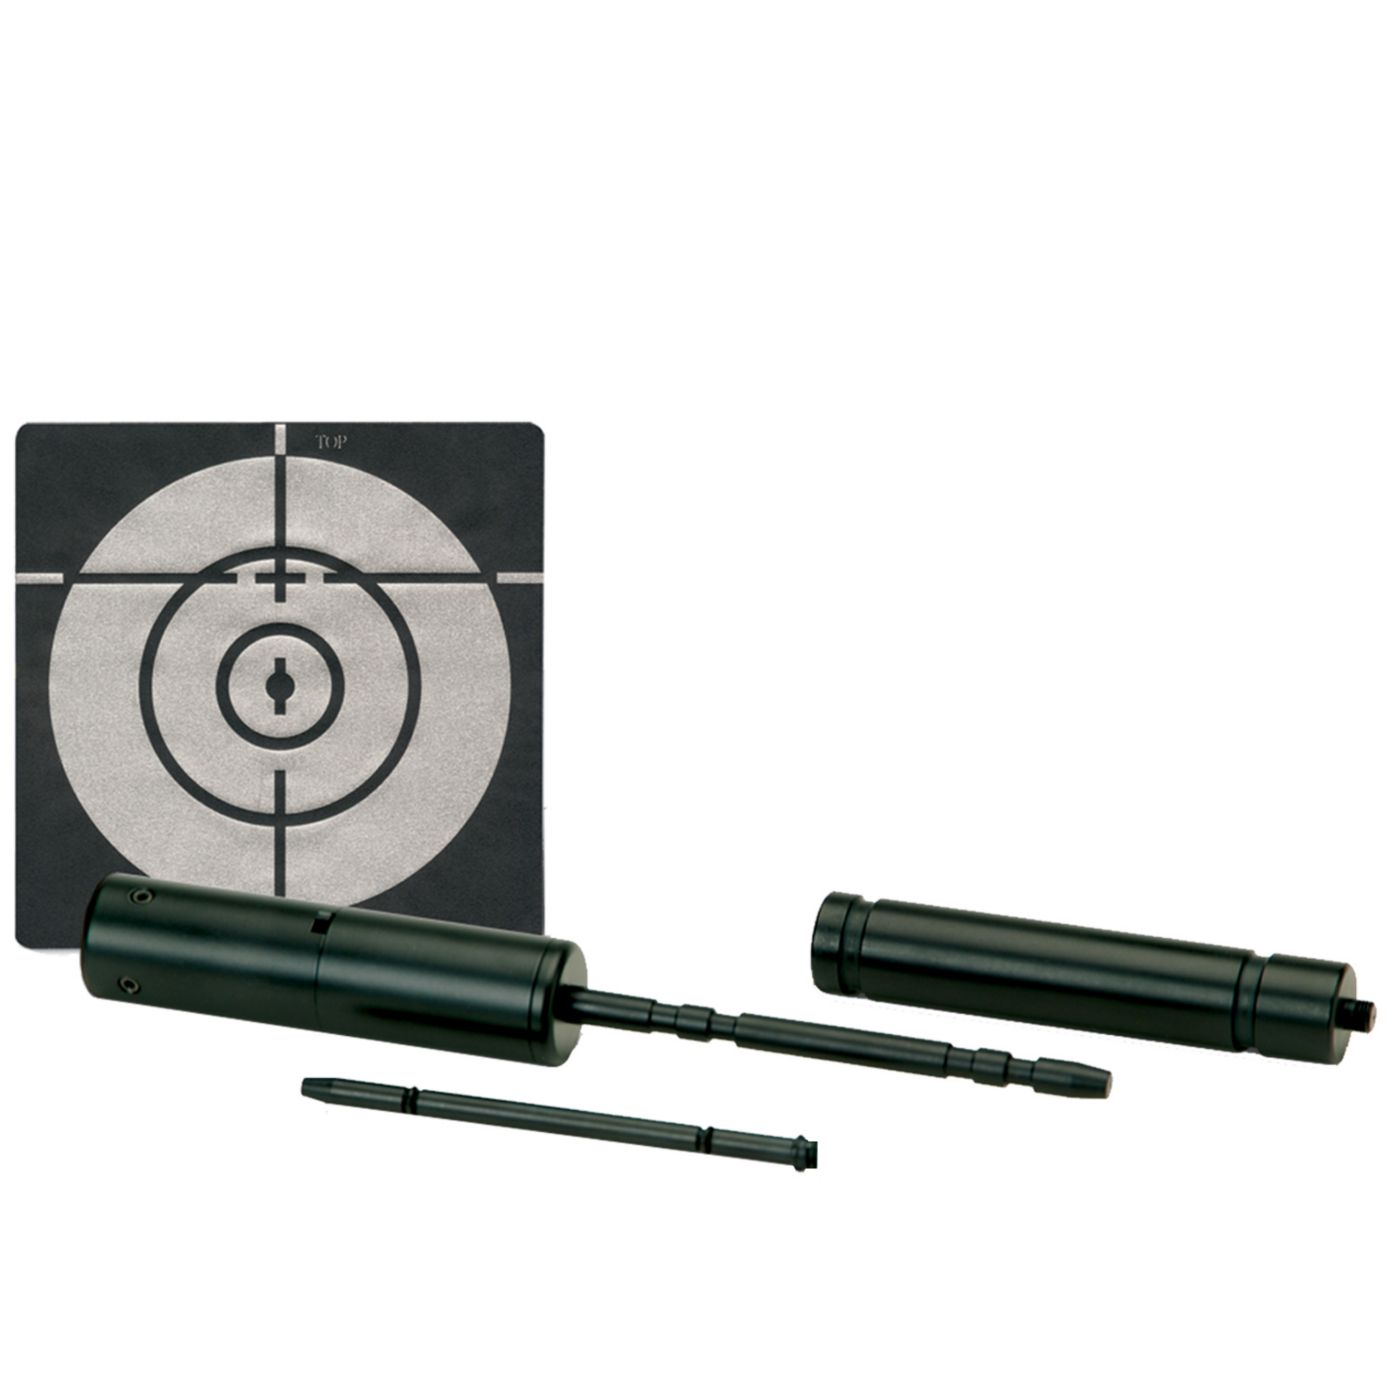 SSI Sight-Rite Green Laser Bore Sighter with DX Kit